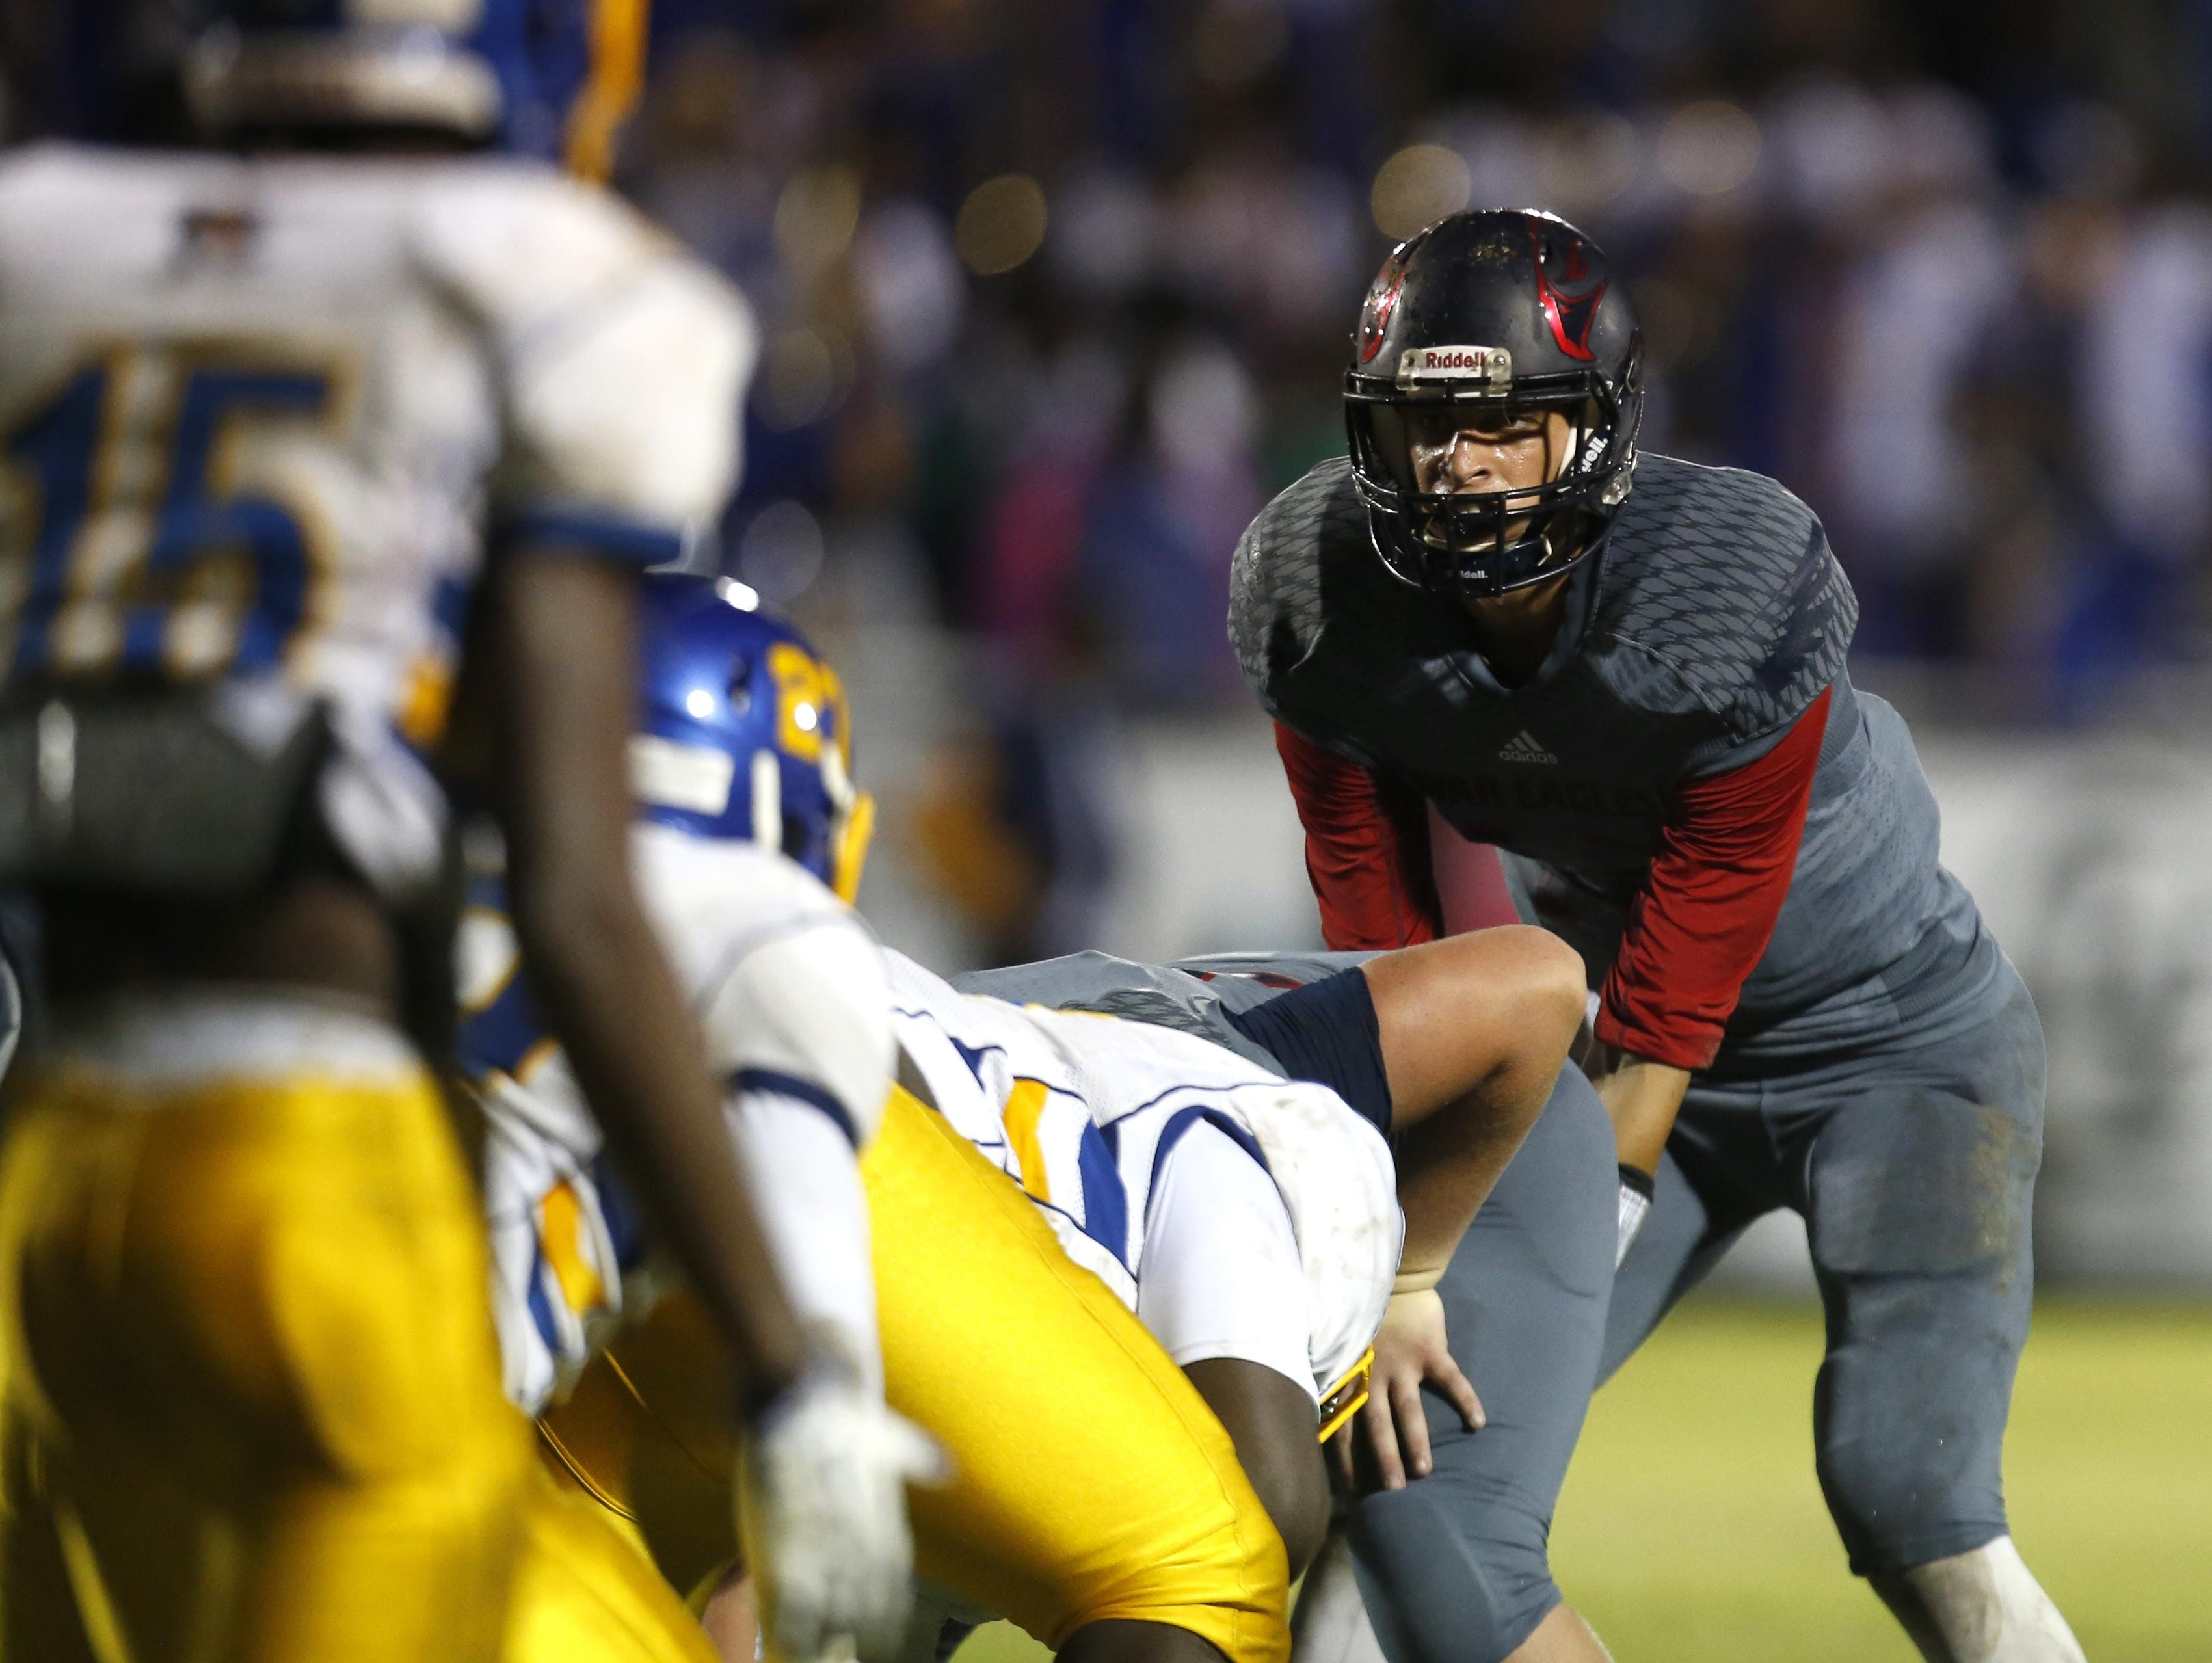 Wakulla quarterback Feleipe Franks goes under center for a play during a playoff win over Rickards last Friday. Franks has opened up his recruitment after decommitting from LSU on Monday.